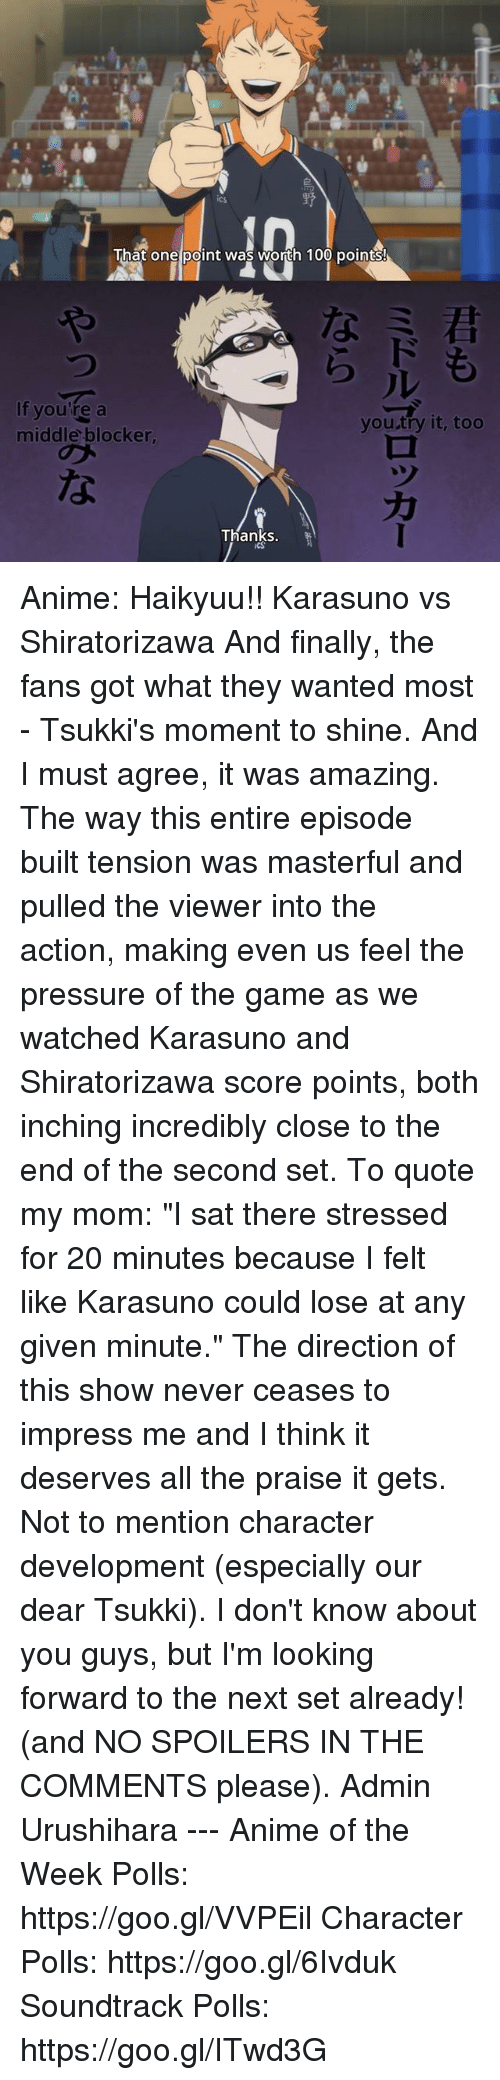 """you tried it: That one point was worth 100 points!  If you're a  you try it, too  middle blocker,  Thanks. Anime: Haikyuu!! Karasuno vs Shiratorizawa  And finally, the fans got what they wanted most - Tsukki's moment to shine.  And I must agree, it was amazing. The way this entire episode built tension was masterful and pulled the viewer into the action, making even us feel the pressure of the game as we watched Karasuno and Shiratorizawa score points, both inching incredibly close to the end of the second set.  To quote my mom: """"I sat there stressed for 20 minutes because I felt like Karasuno could lose at any given minute.""""  The direction of this show never ceases to impress me and I think it deserves all the praise it gets. Not to mention character development (especially our dear Tsukki).  I don't know about you guys, but I'm looking forward to the next set already! (and NO SPOILERS IN THE COMMENTS please).  Admin Urushihara --- Anime of the Week Polls: https://goo.gl/VVPEil Character Polls: https://goo.gl/6Ivduk Soundtrack Polls: https://goo.gl/ITwd3G"""